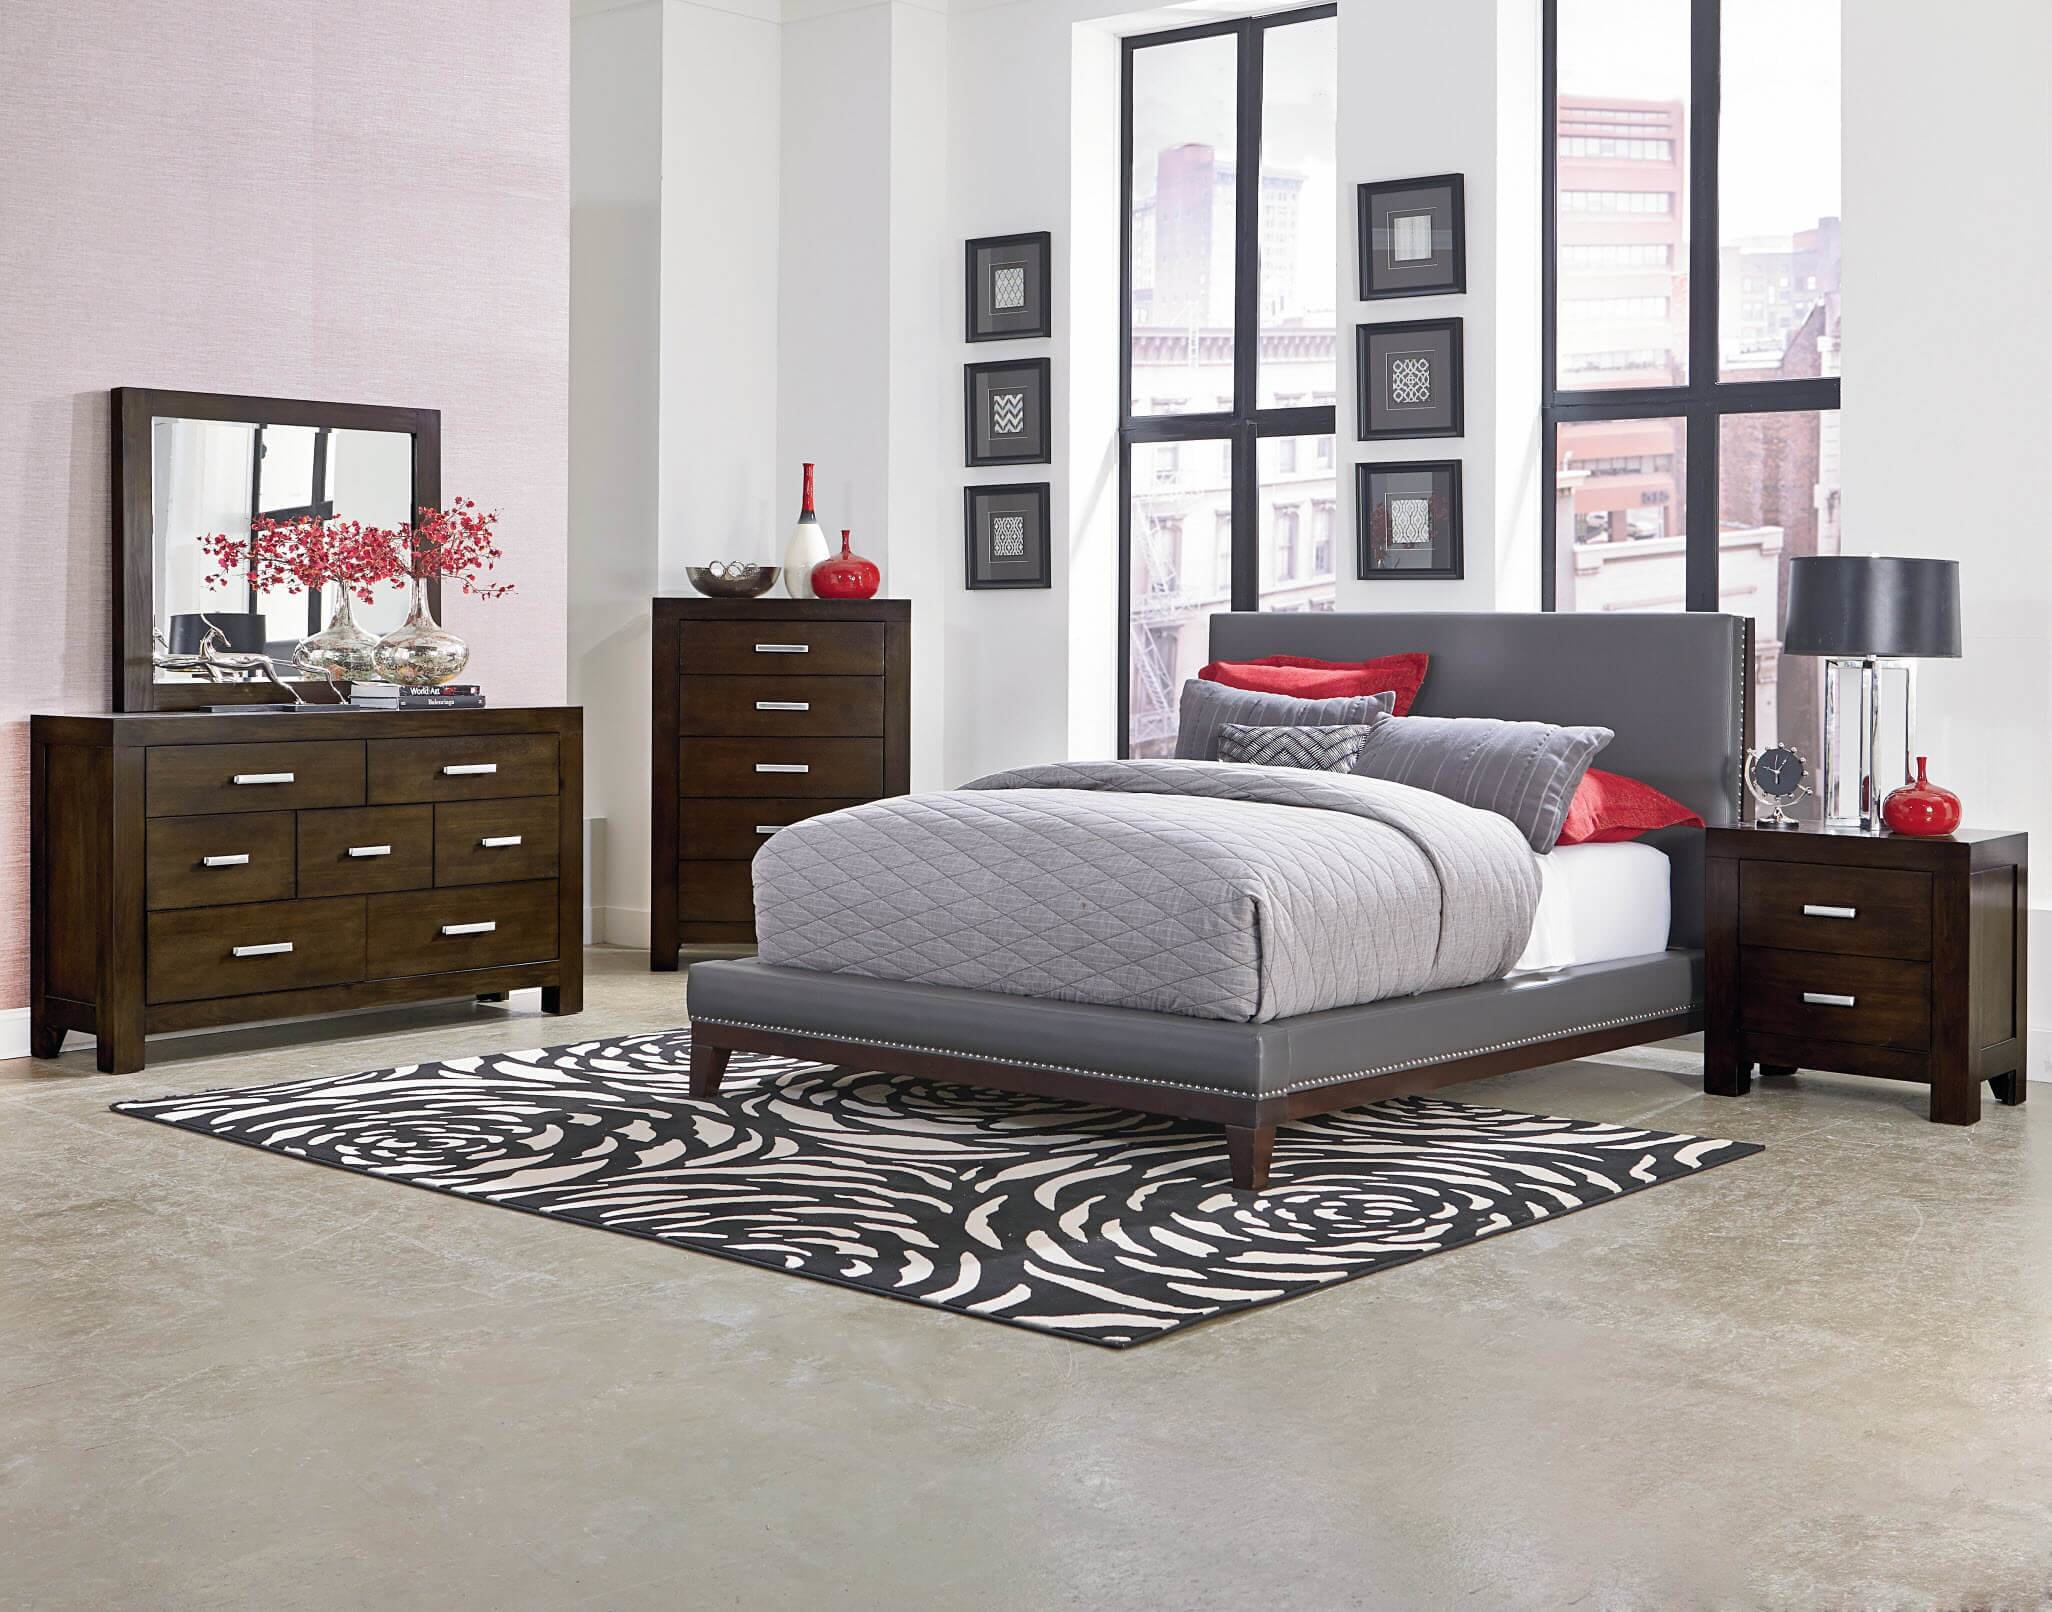 Best Couture Platform Bedroom Set Bedroom Furniture Sets With Pictures